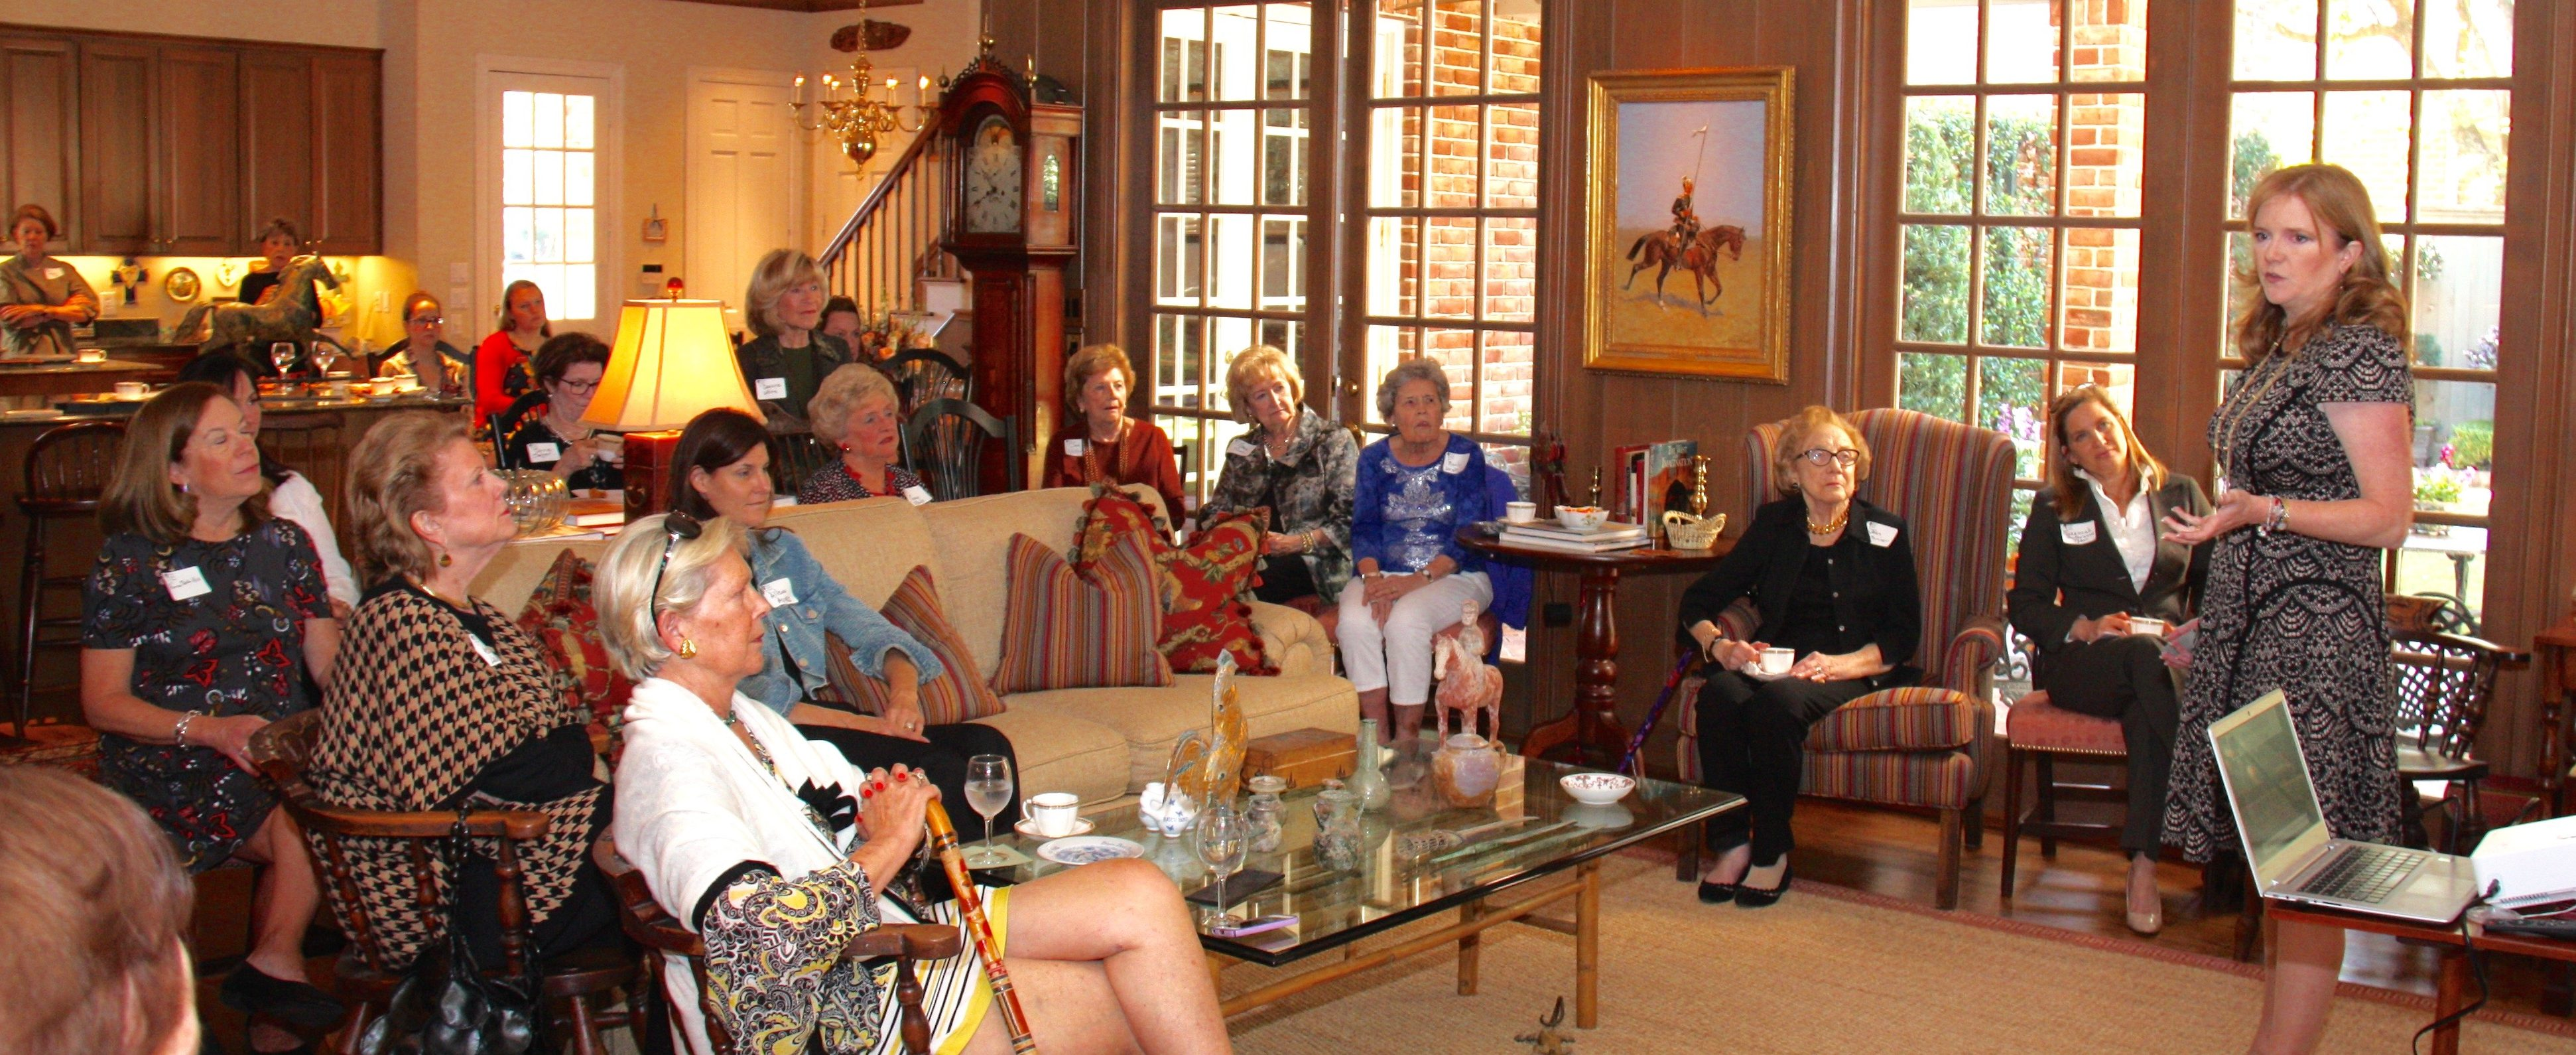 Alecia Lawyer, Founder & CEO of ROCO, speaks to Thetas at the October Coffee at Cheri Fossler's home.